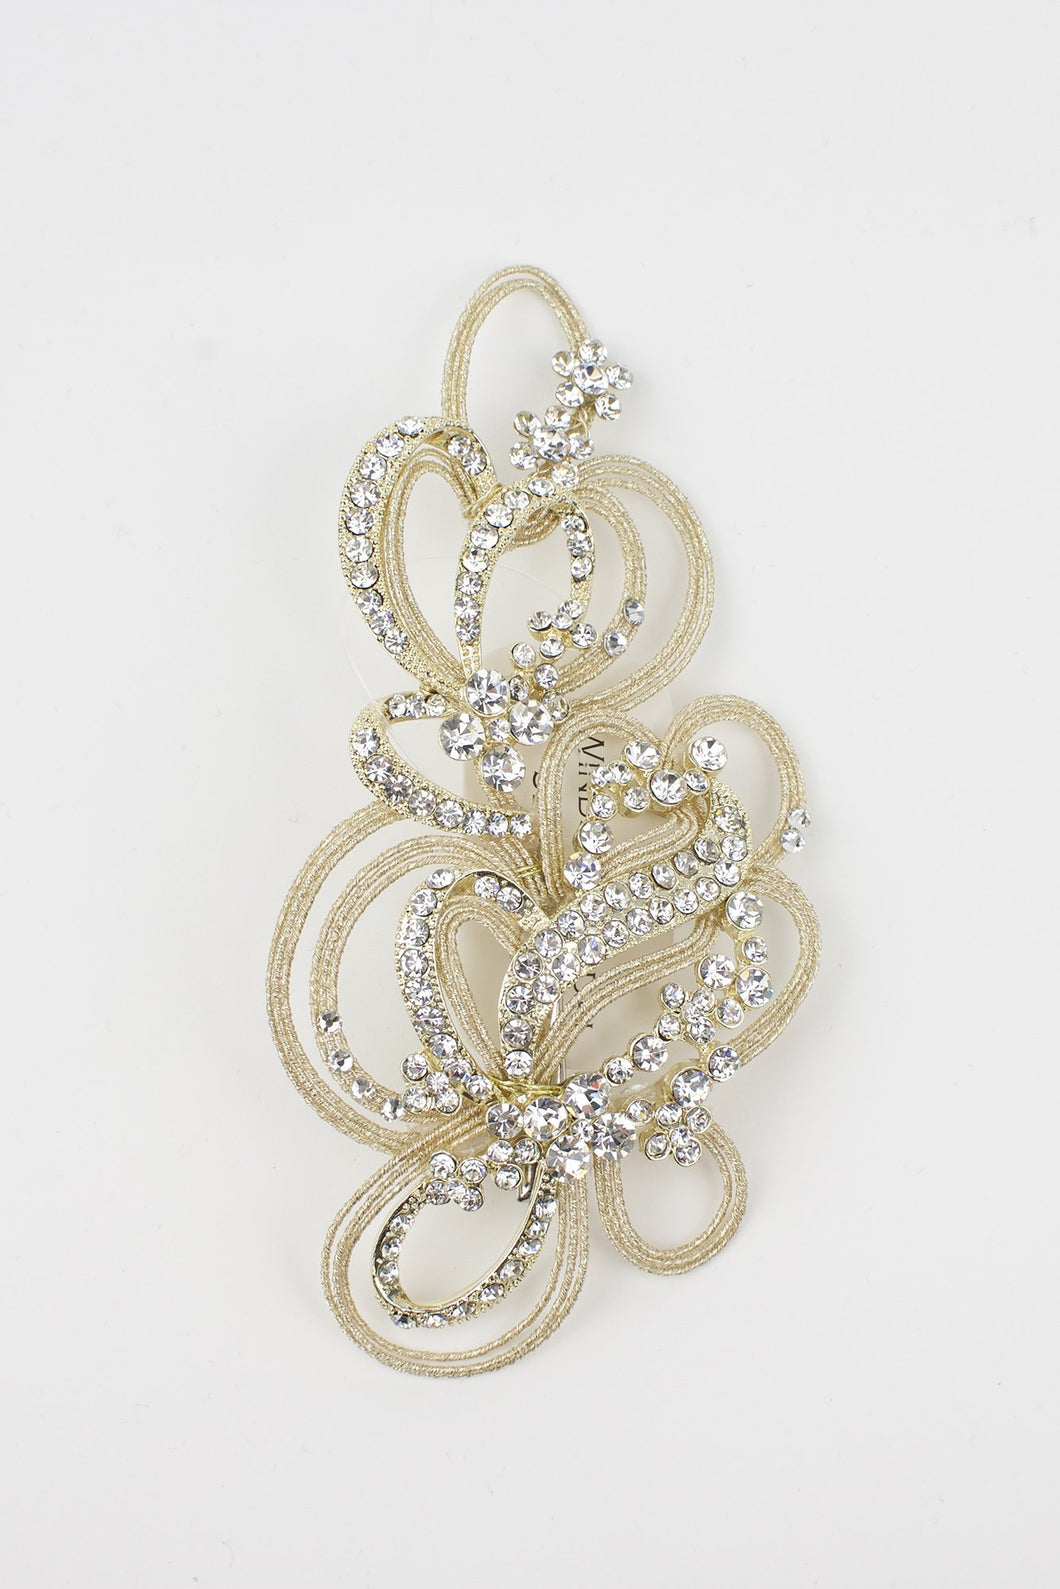 A champagne gold bridal comb with many tiny crystals sits on a pure white background